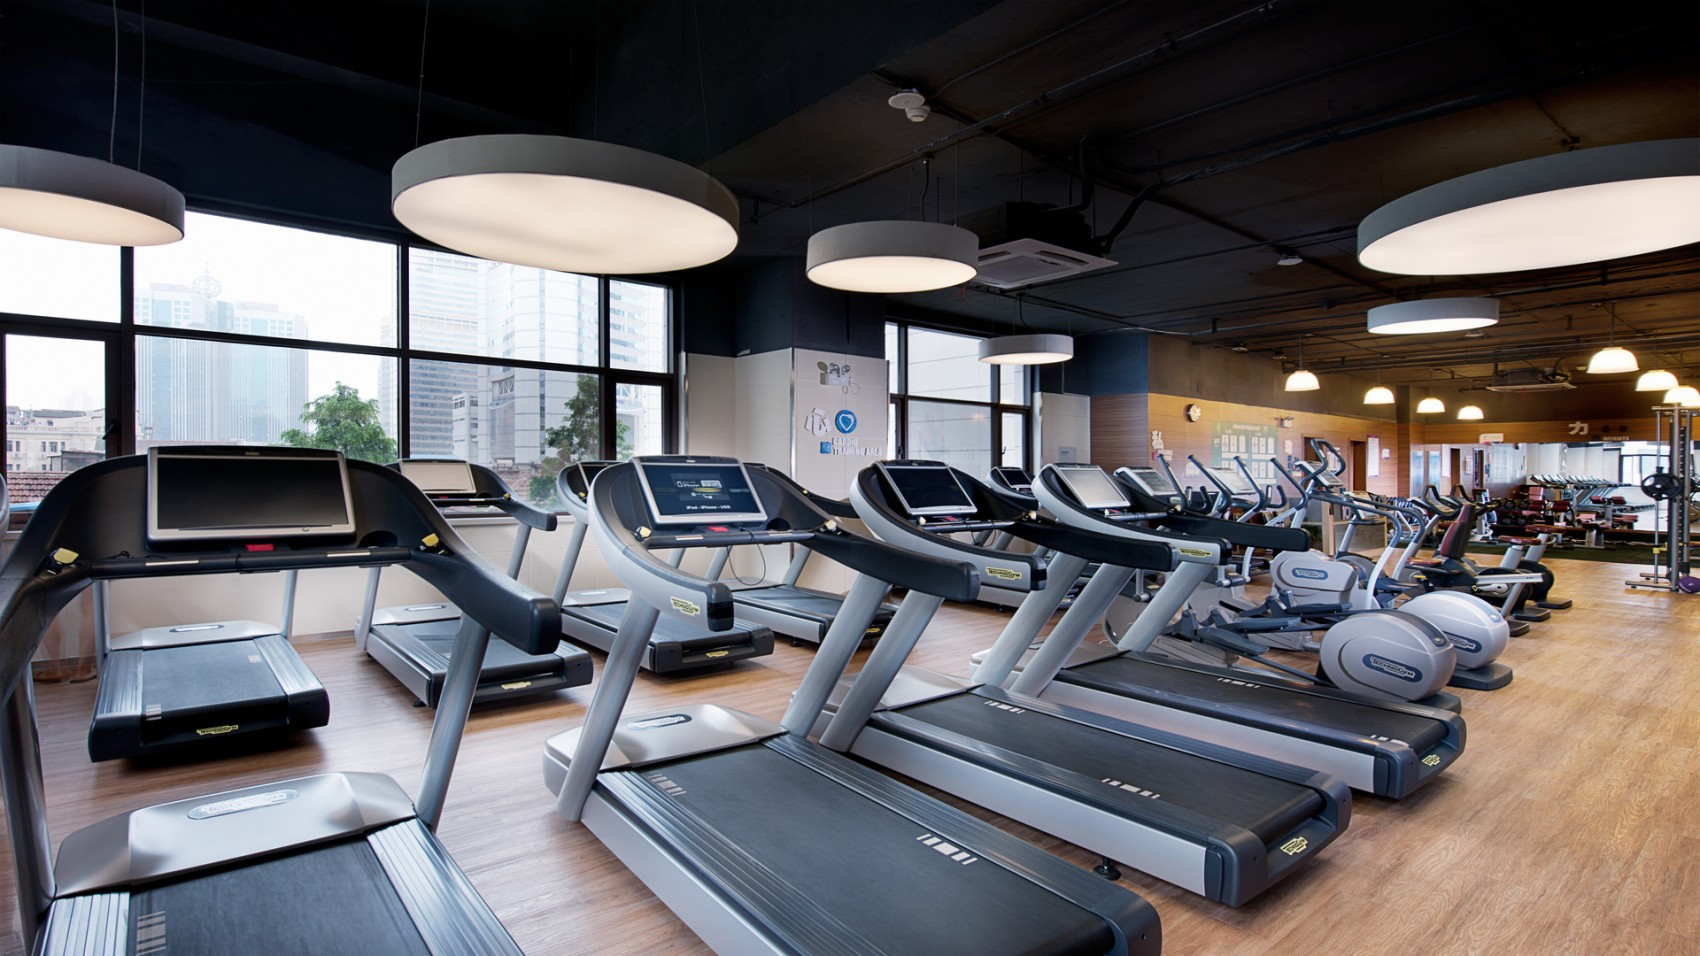 Fitness Centers & Clinics